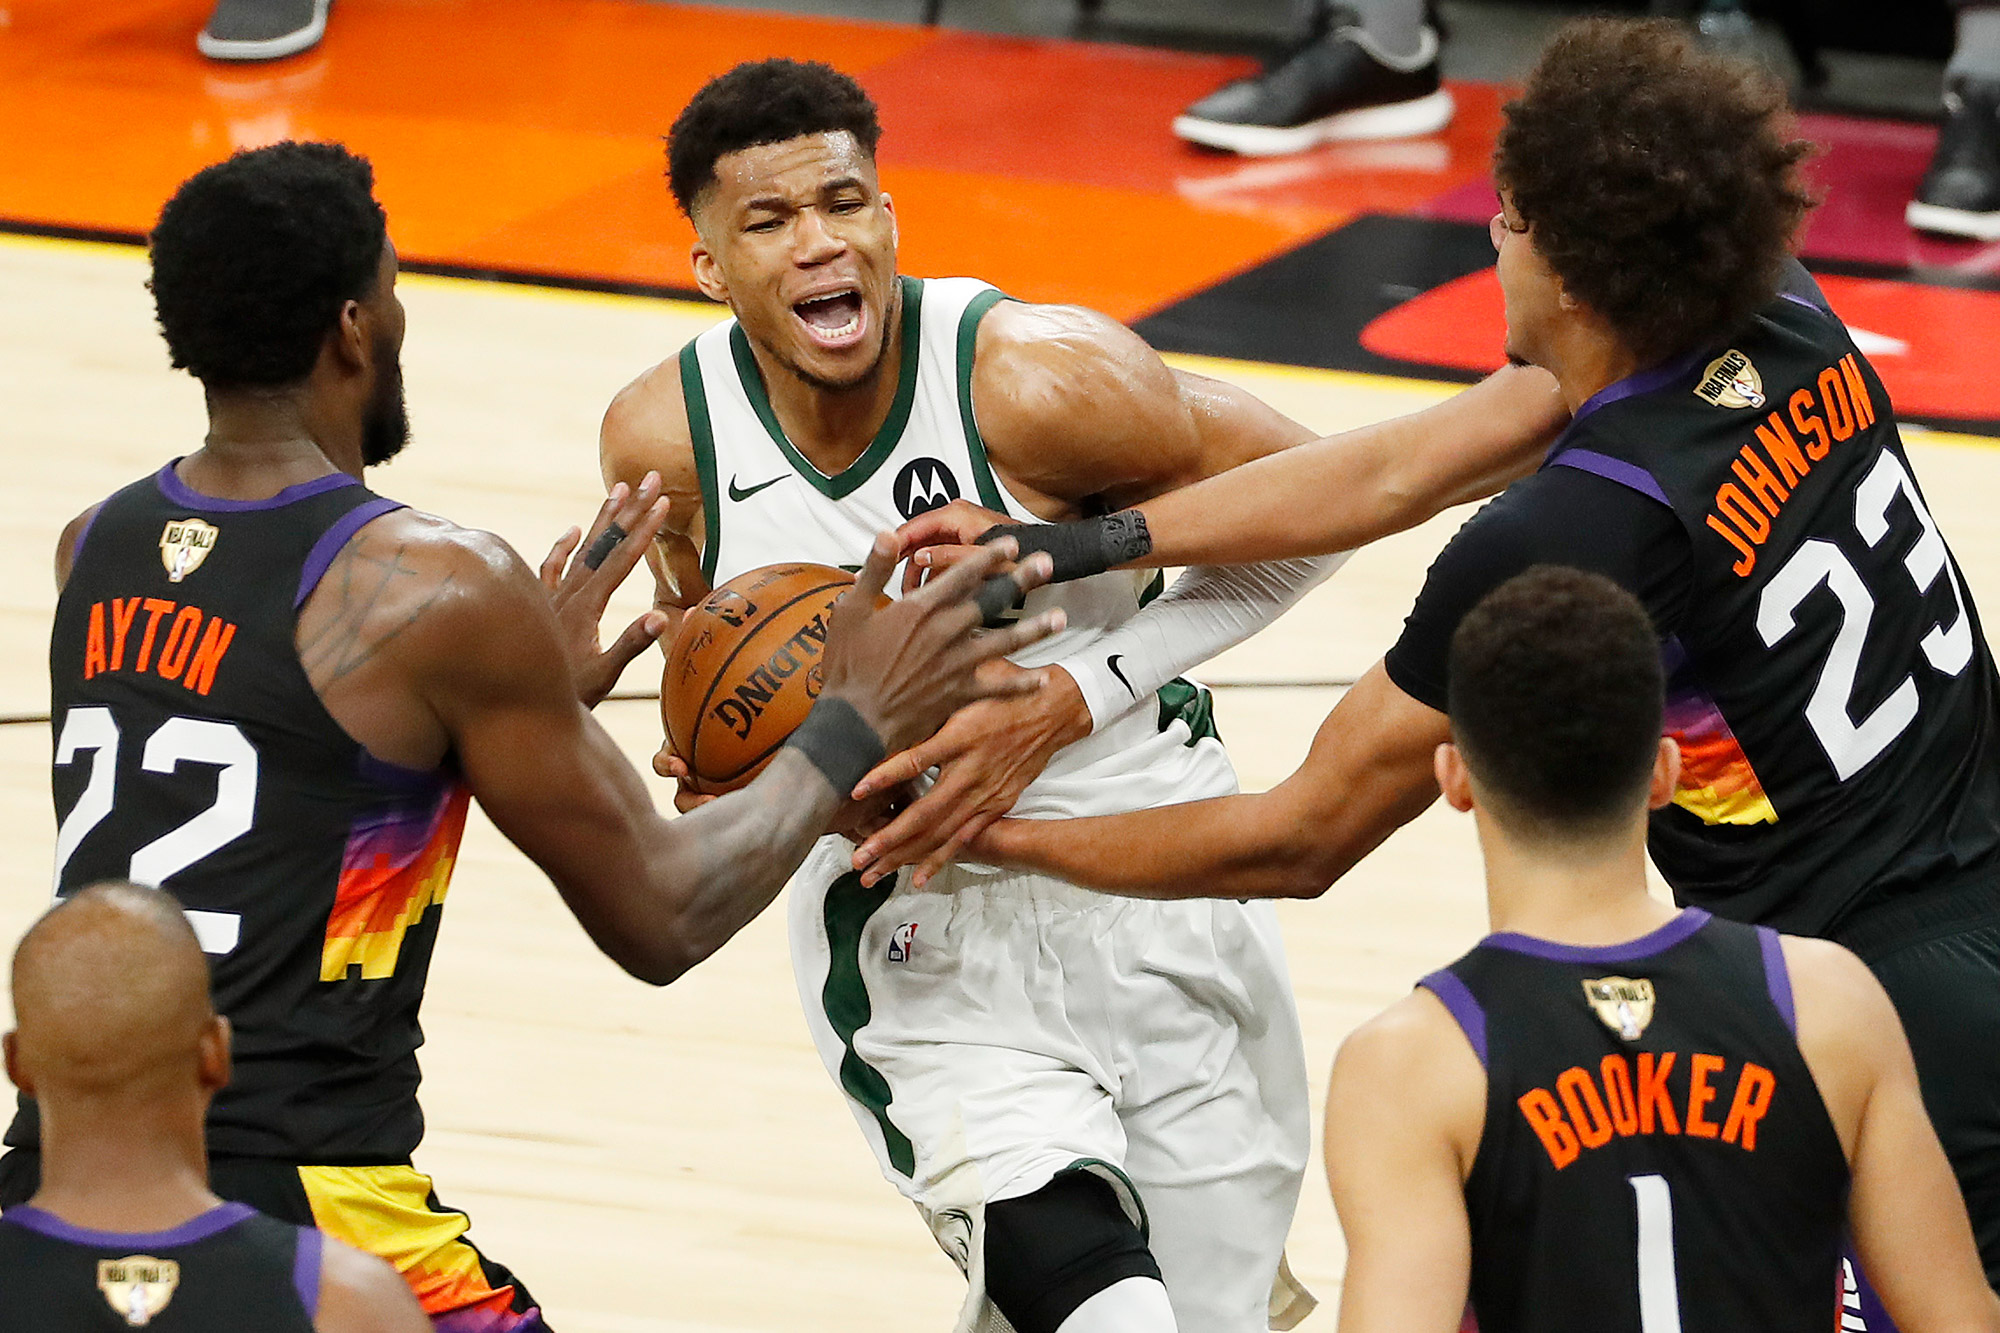 Giannis Antetokounmpo #34 of the Milwaukee Bucks is pressured by Deandre Ayton #22 and Cameron Johnson #23 of the Phoenix Suns during the second half in Game One of the NBA Finals at Phoenix Suns Arena on July 06, 2021 in Phoenix, Arizona